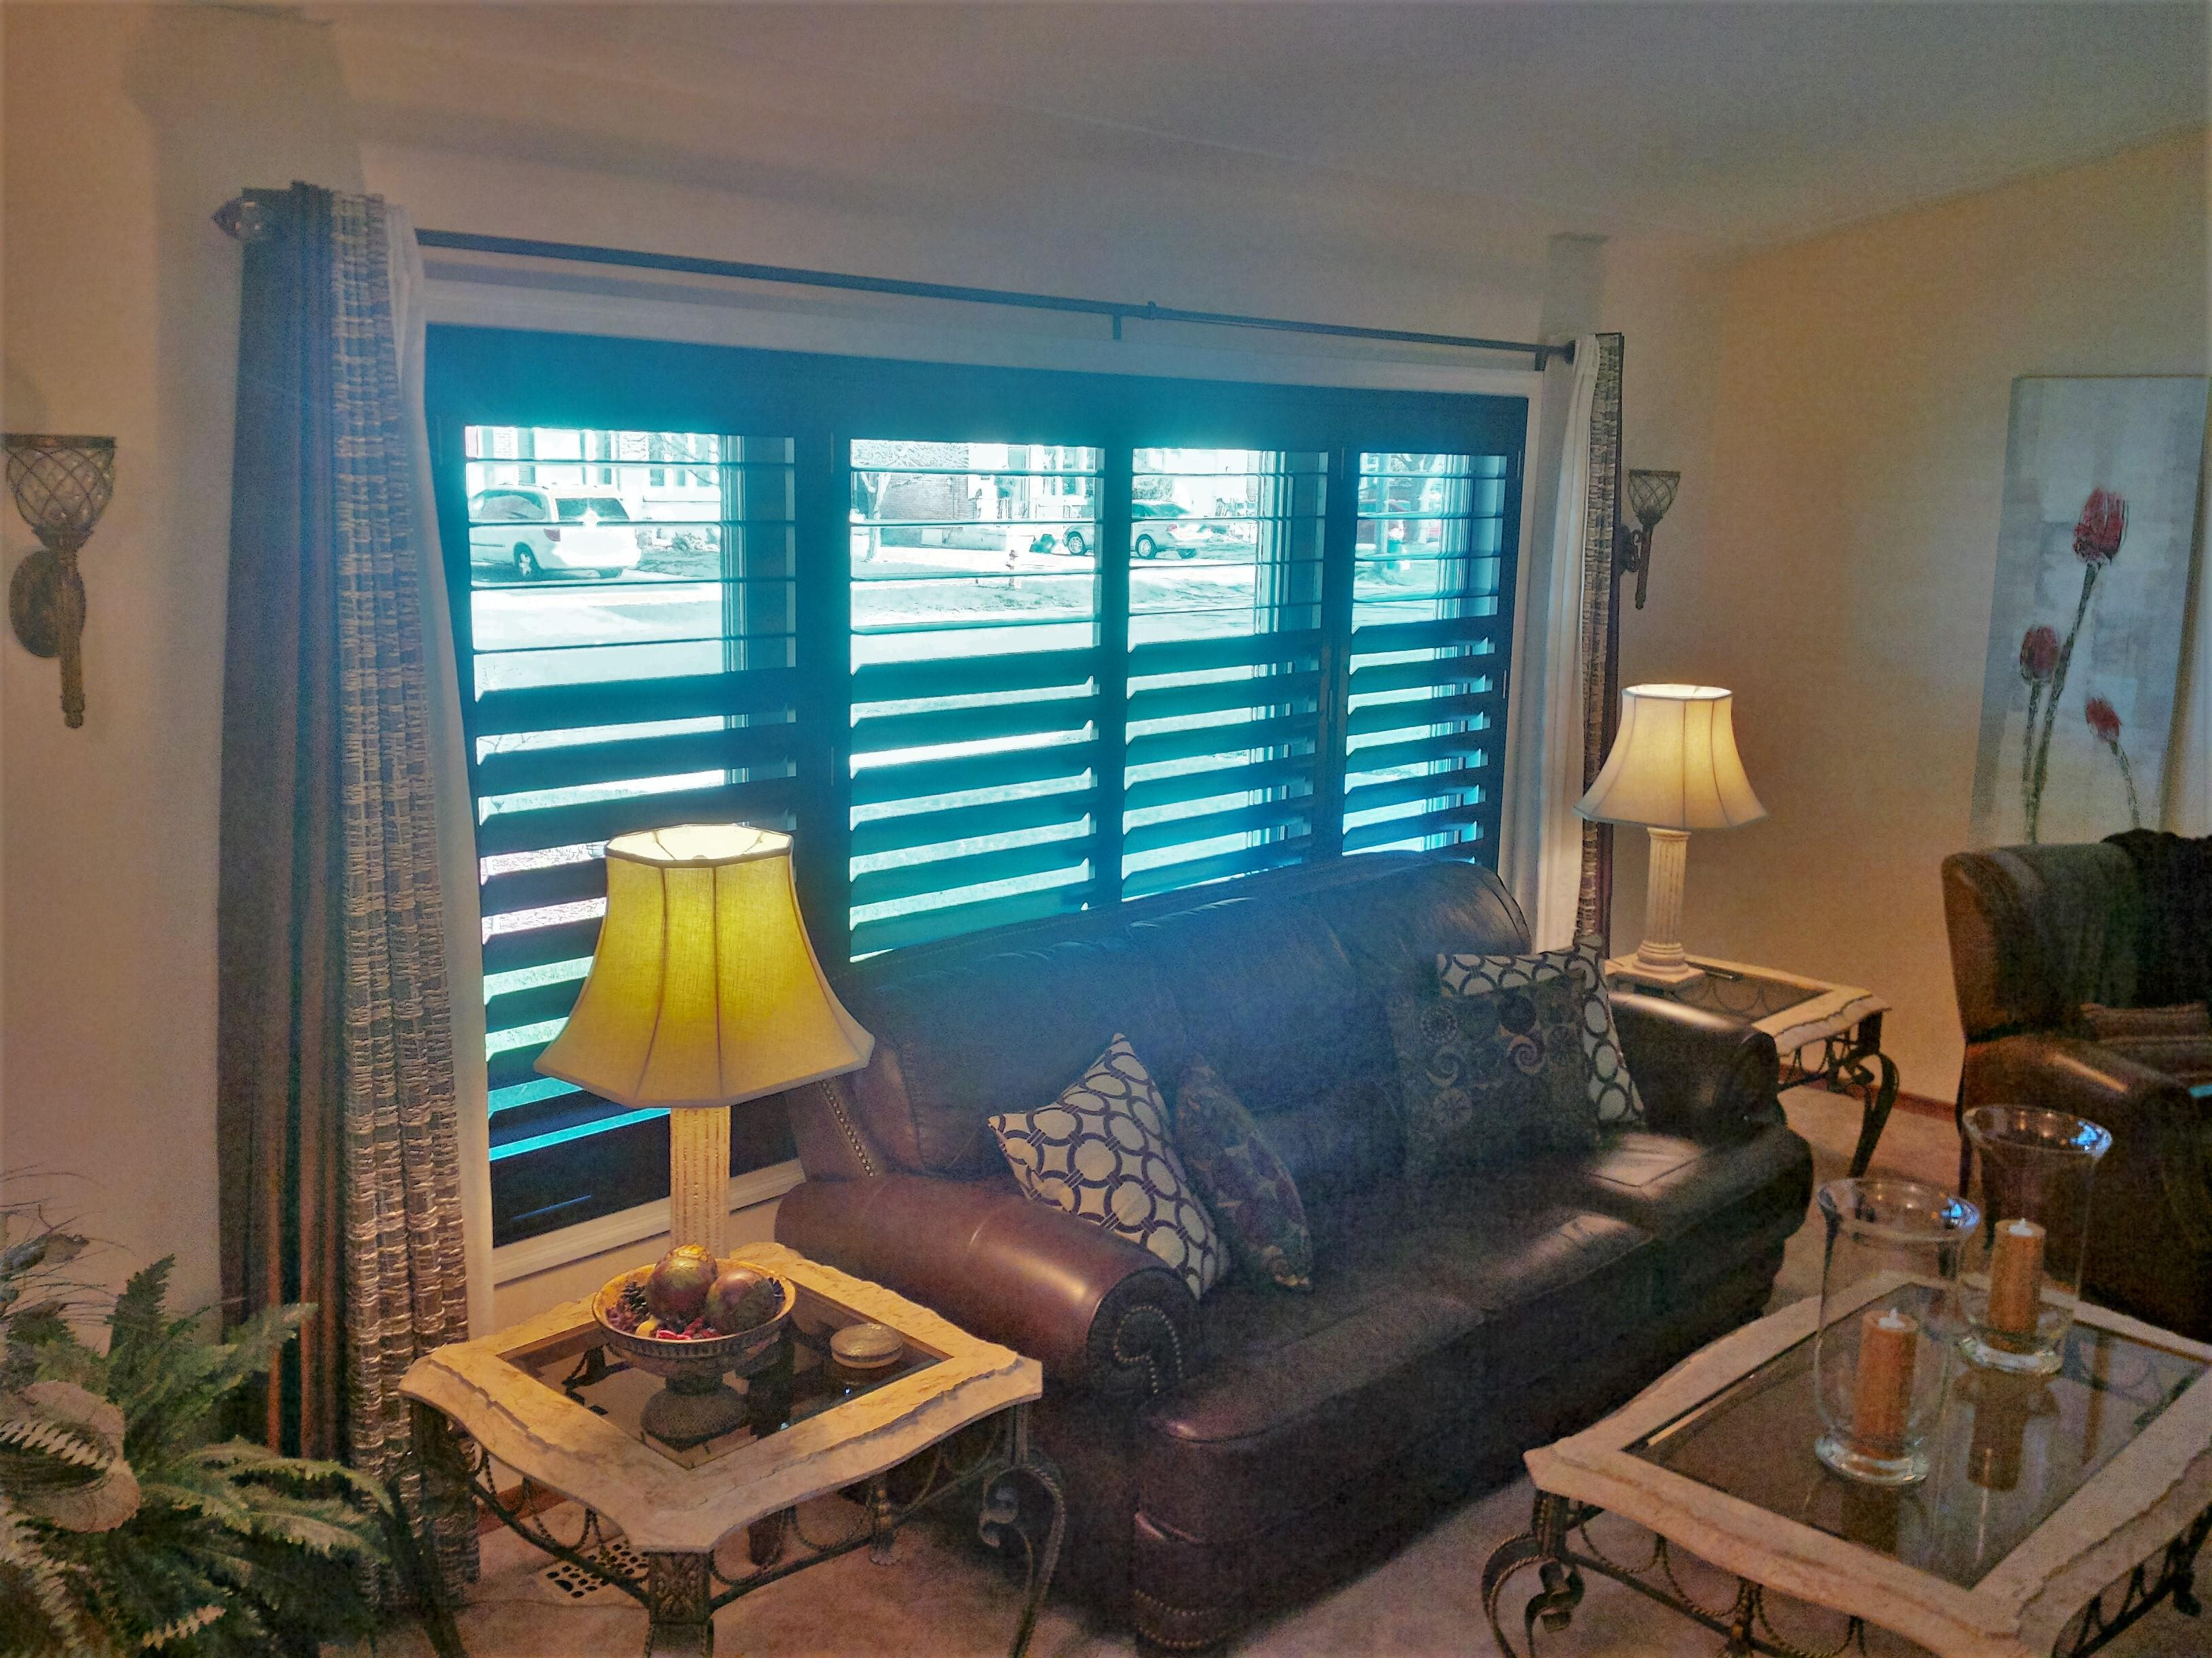 Budget Blinds à Waterloo: Make a statement in your home with stunning black shutters. This Kitchener homeowner wanted something dramatic in colour and timeless in style. You can't beat the beauty of natural solid wood.